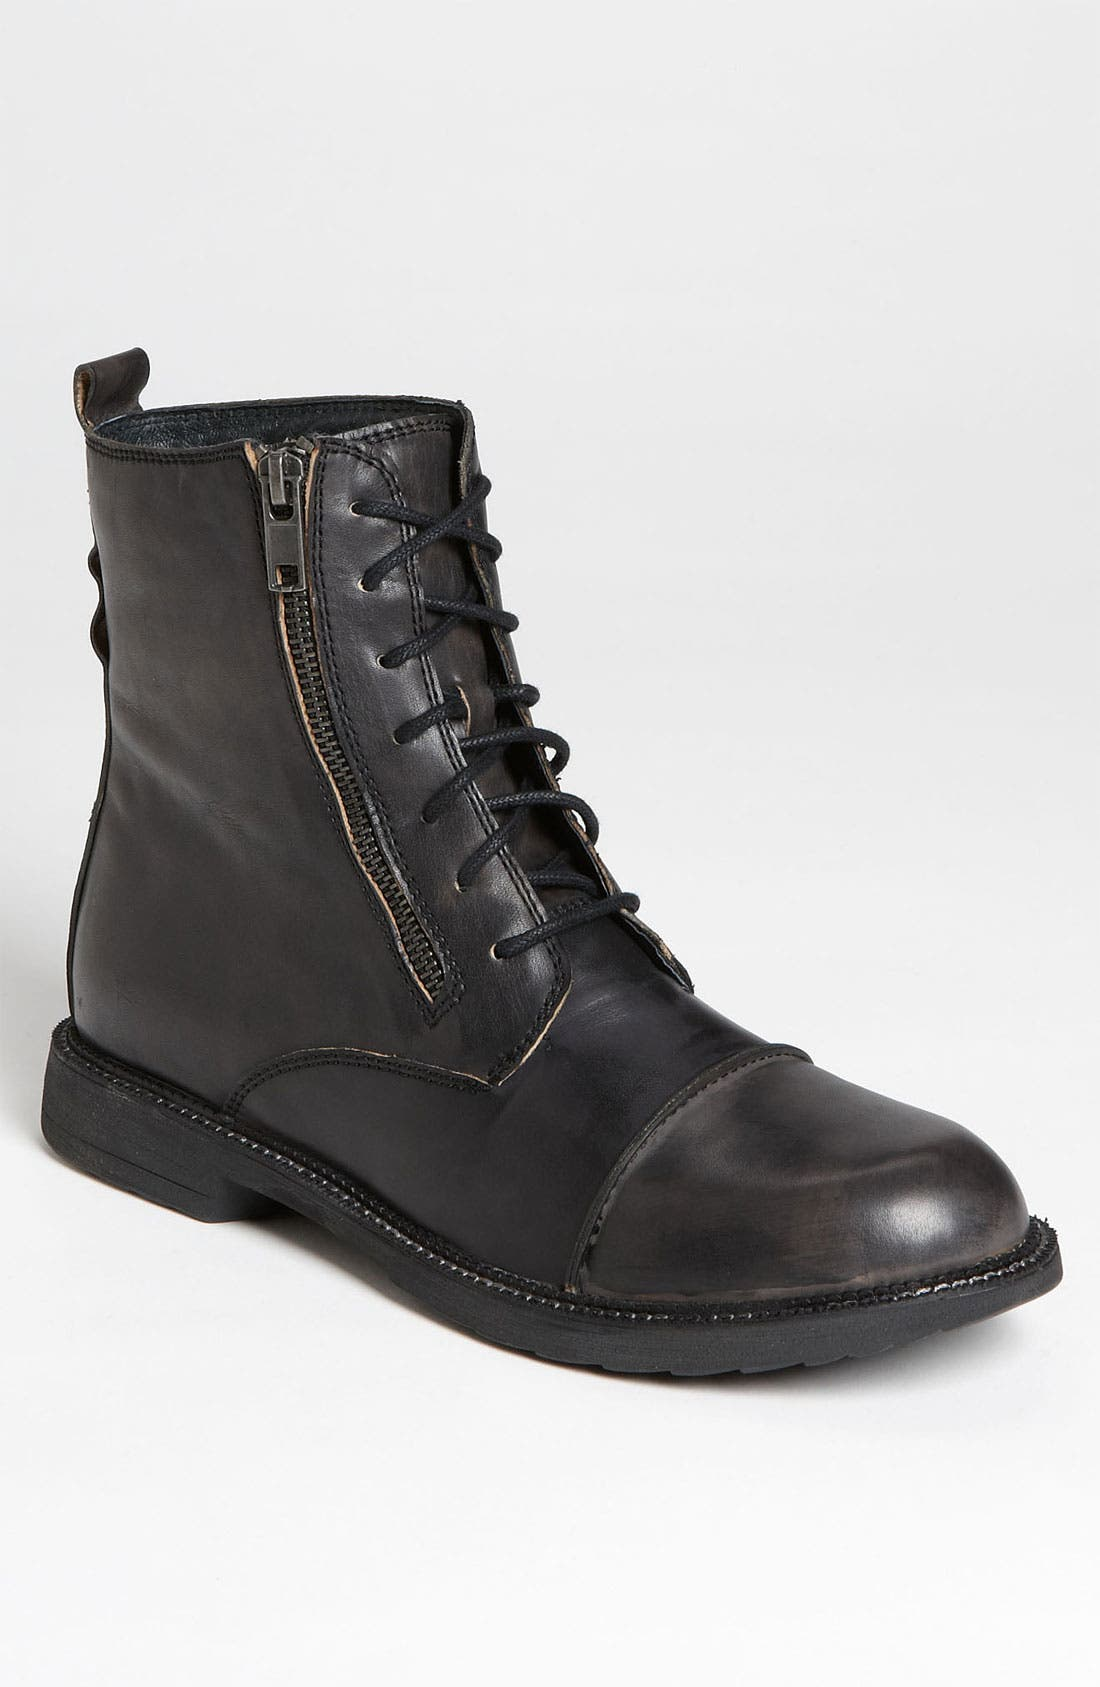 Alternate Image 1 Selected - Bed Stu 'Patriot' Cap Toe Boot